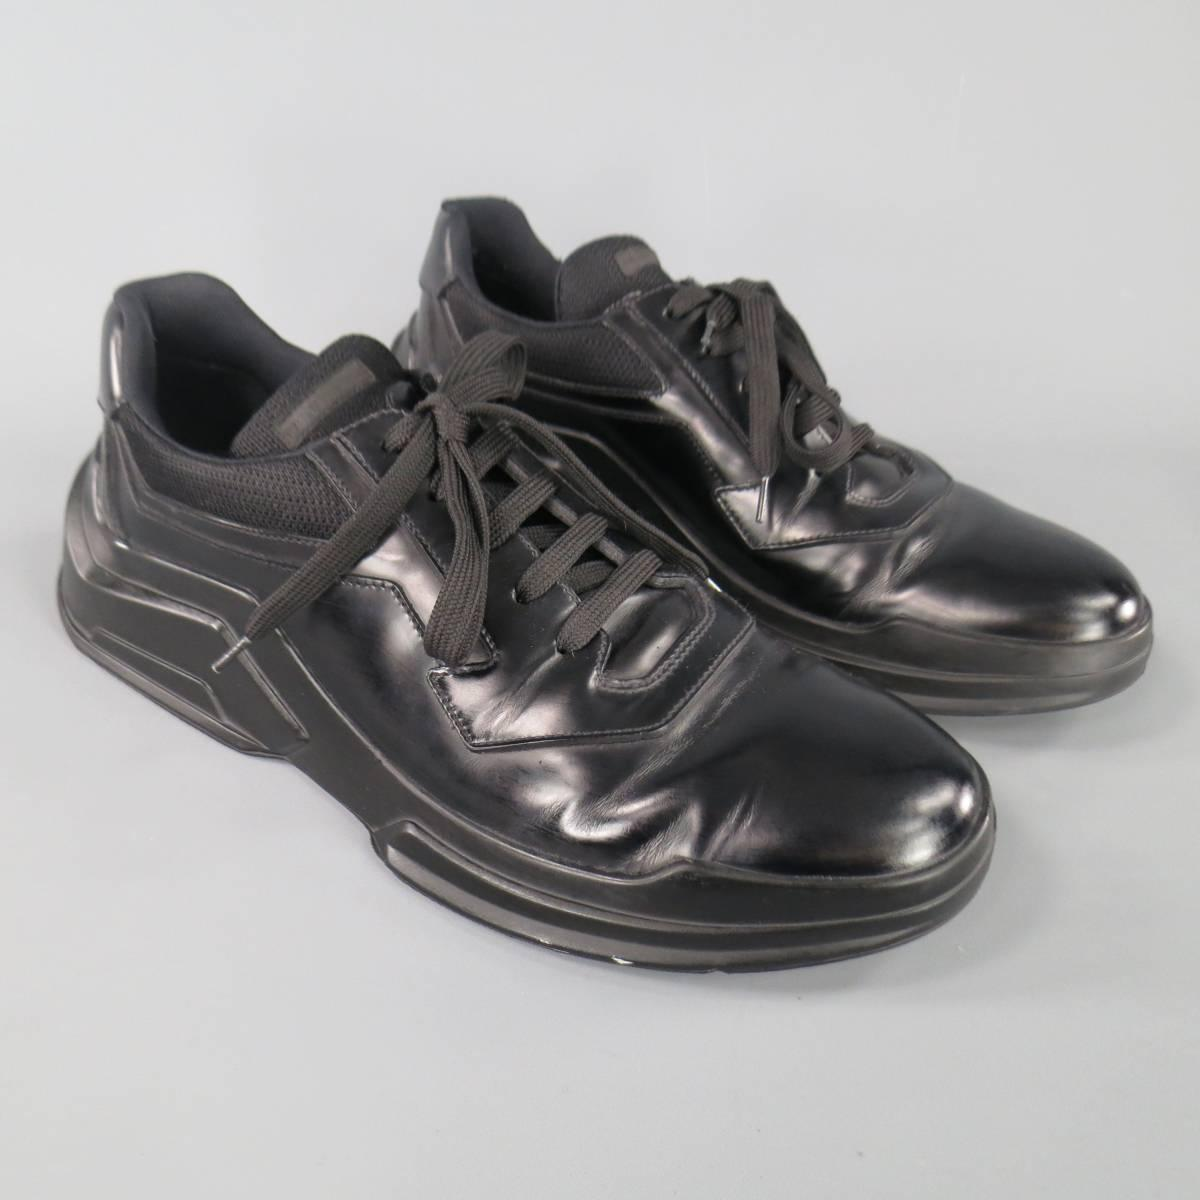 Men S Prada Size 11 Black Leather Thick Rubber Sole Lace